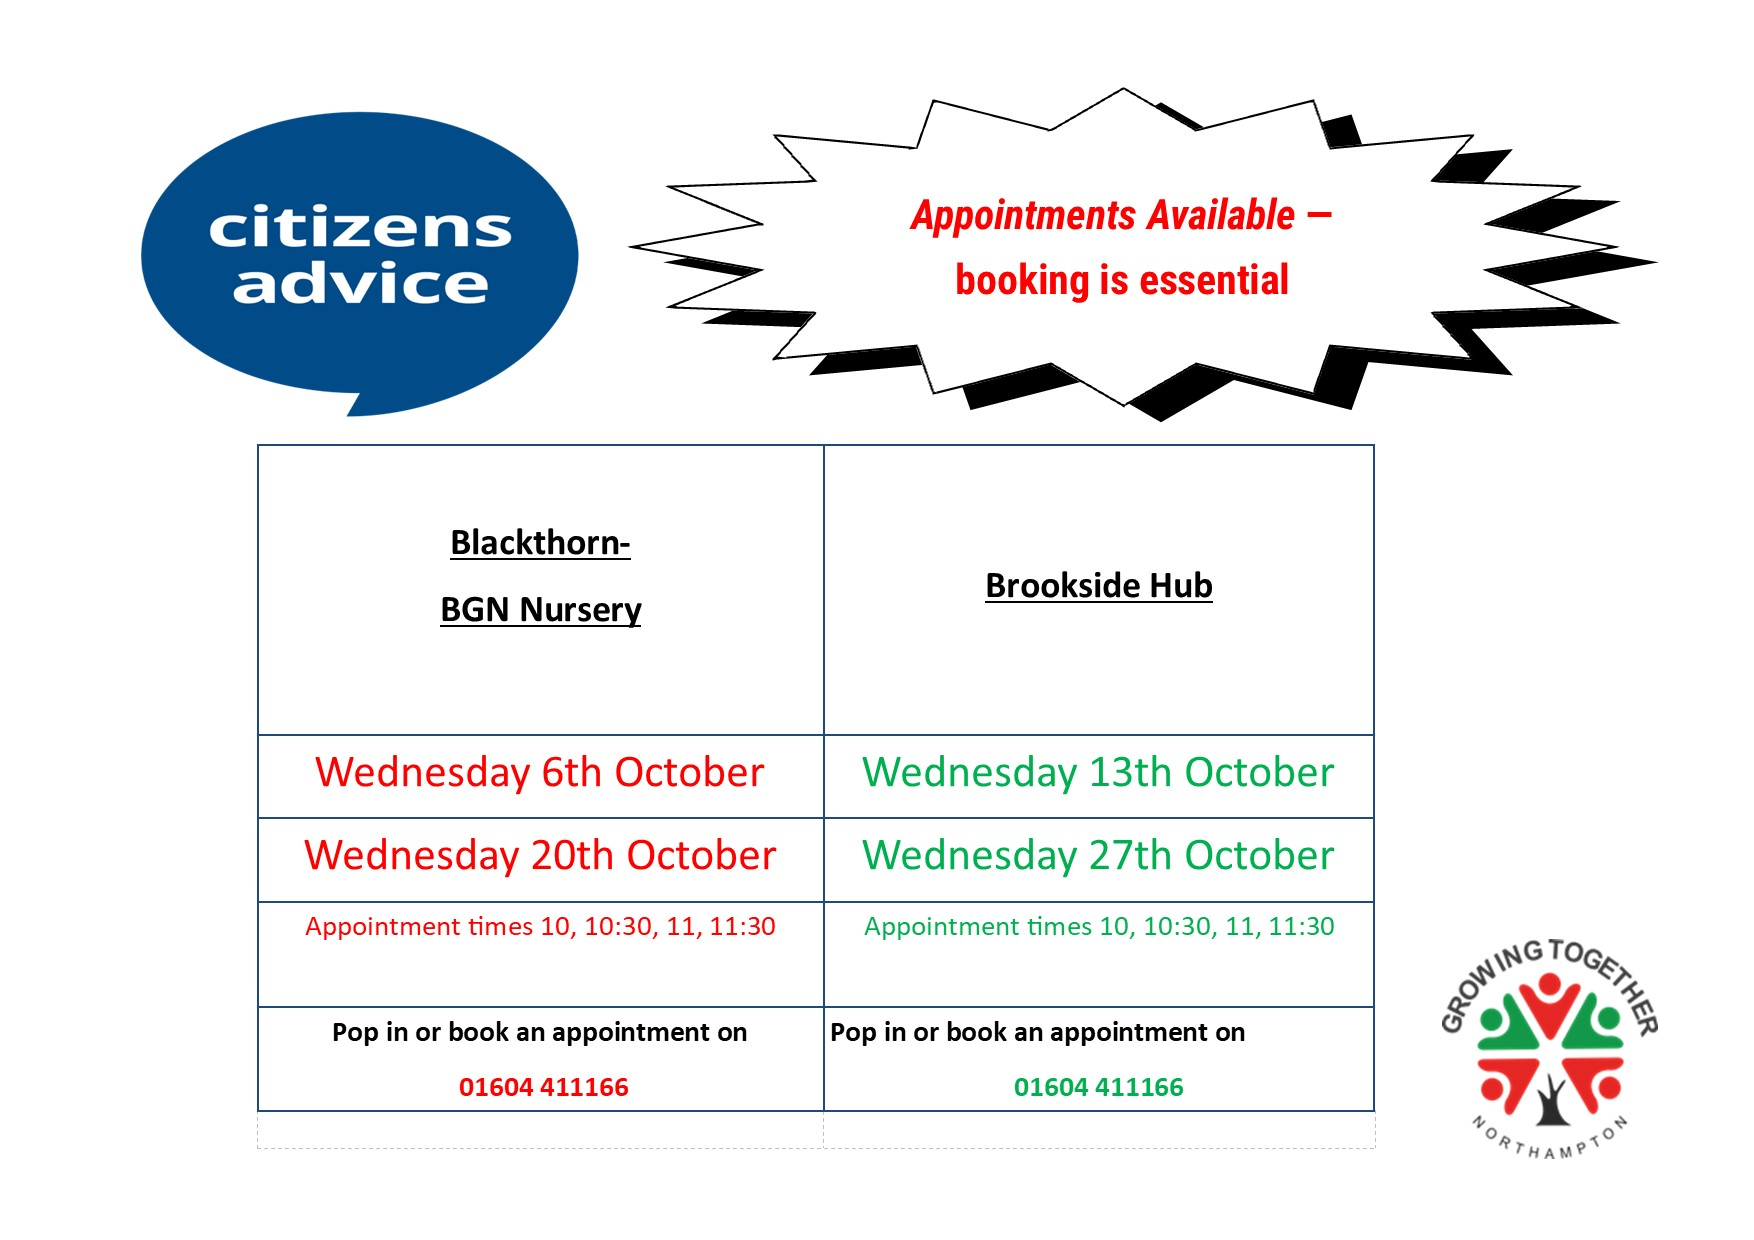 Citizens Advice is back at the Nursery and Hub